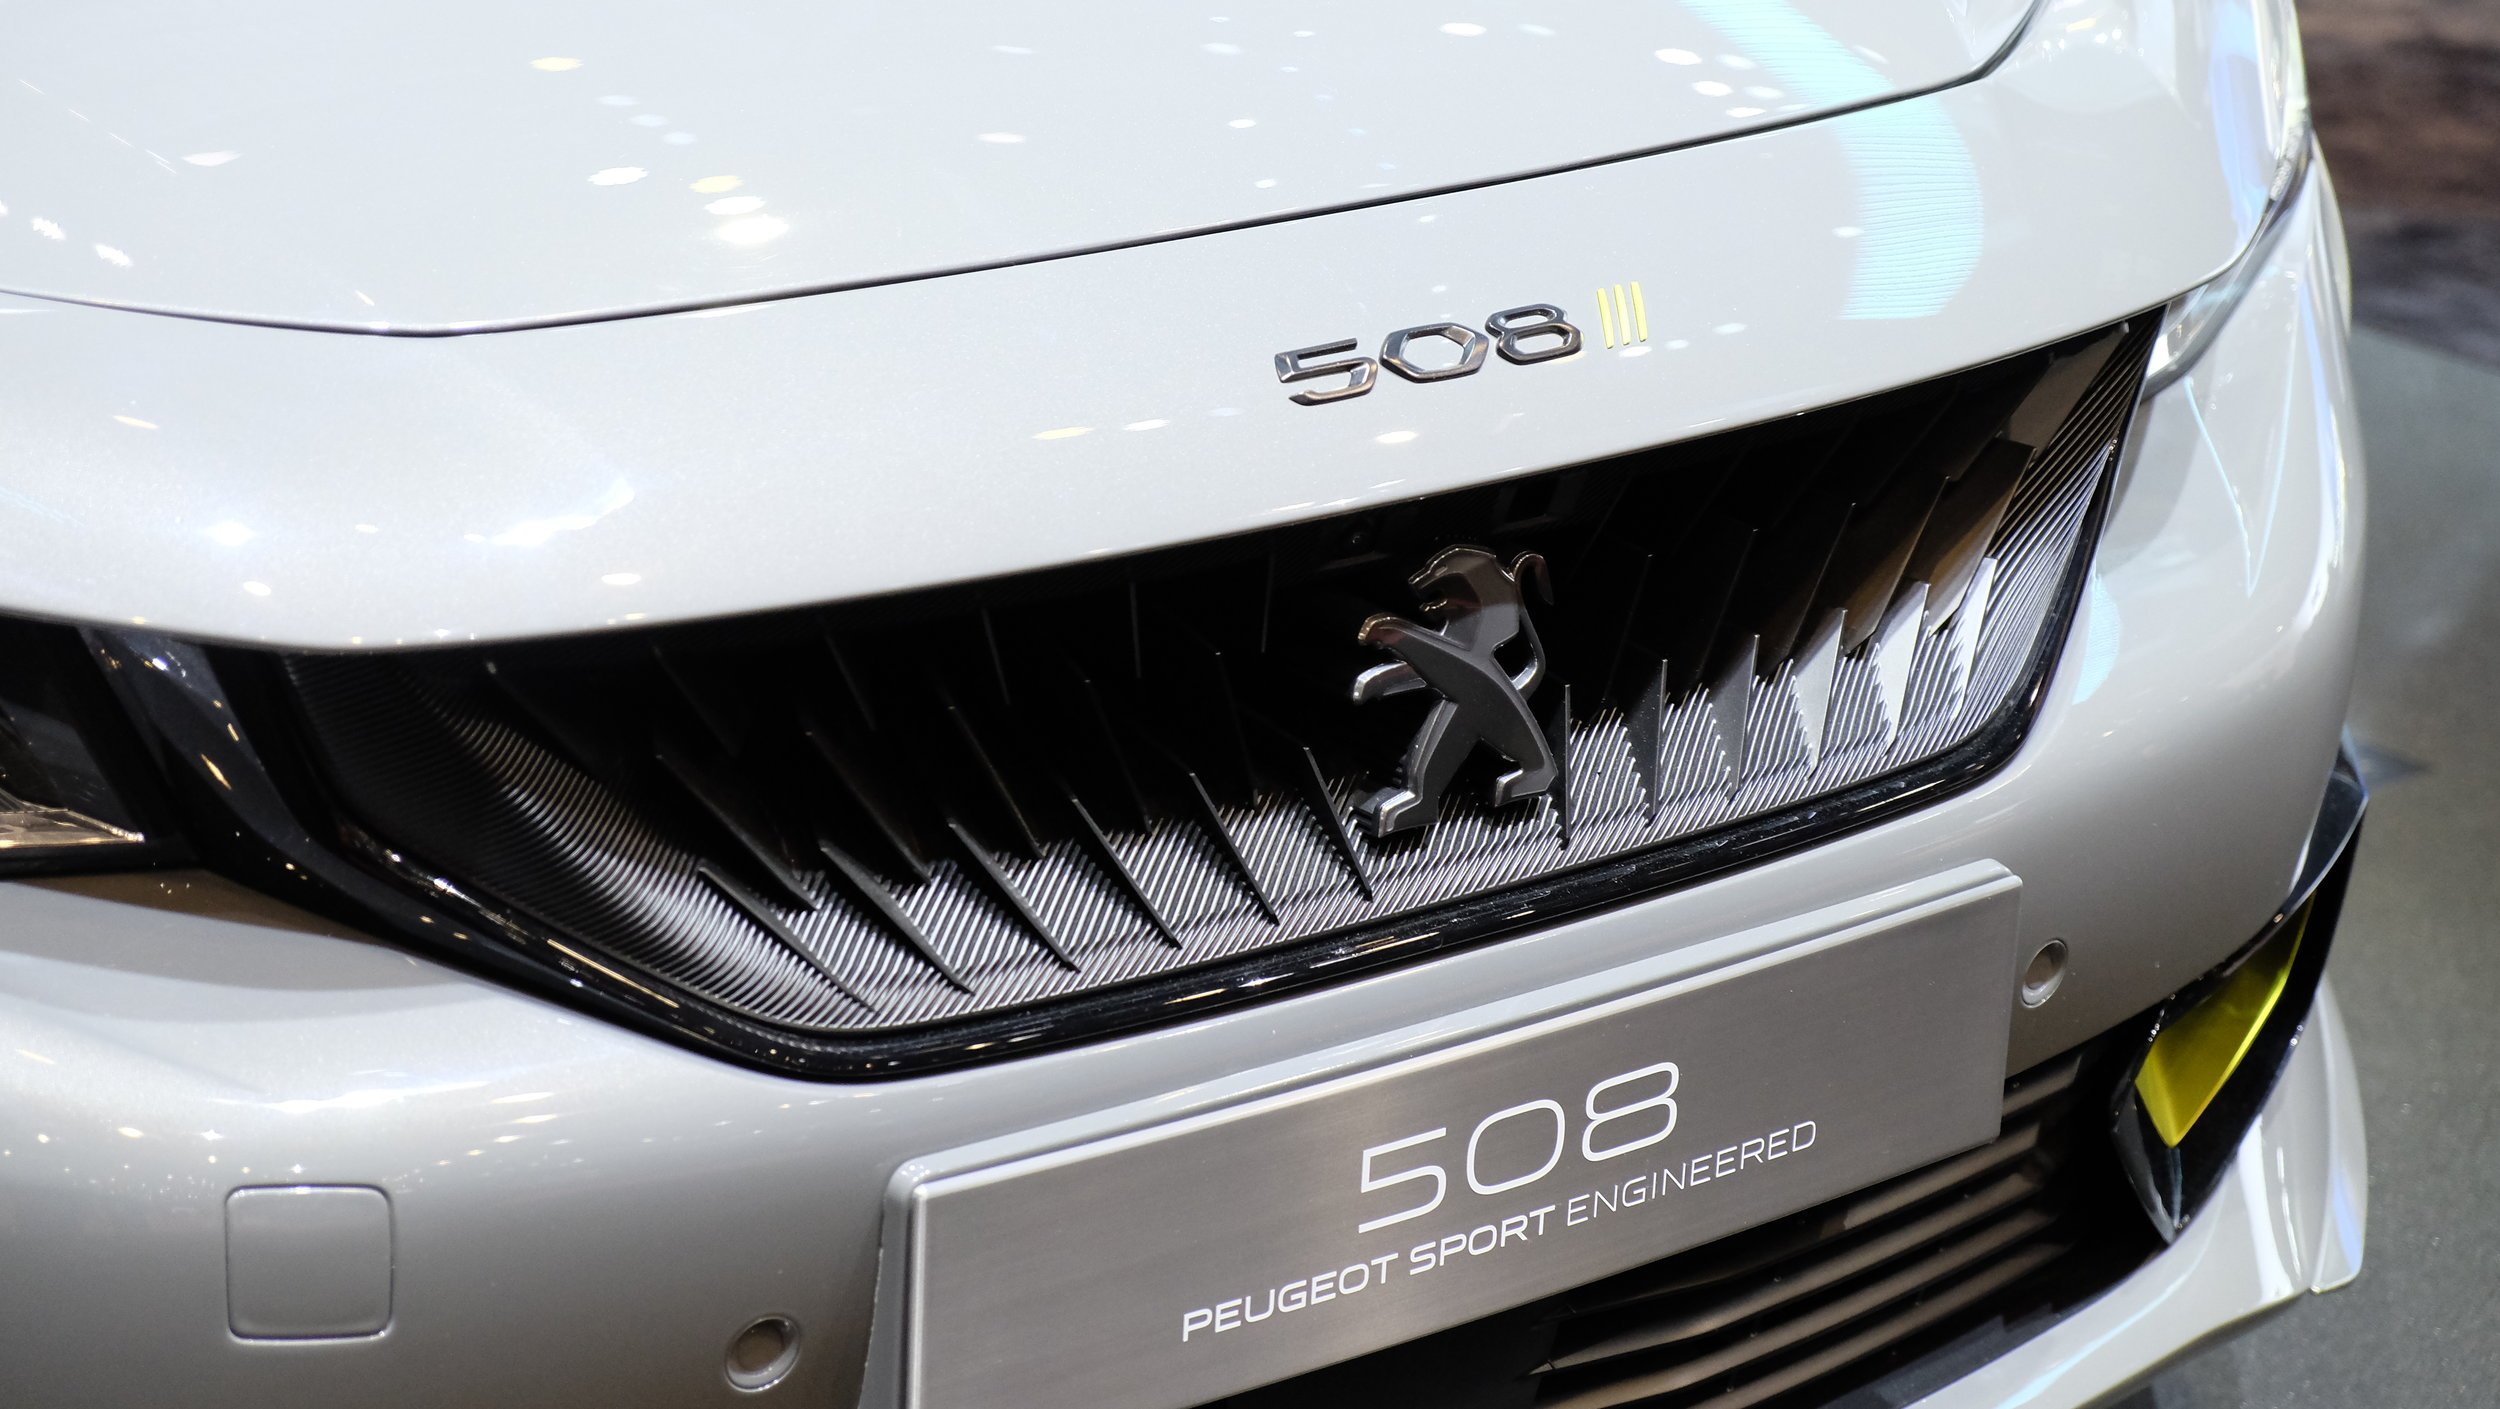 The 3D-printed grill on Peugeot Sport Engineered 508 shows that the long-promised tech is finally ready for the big time